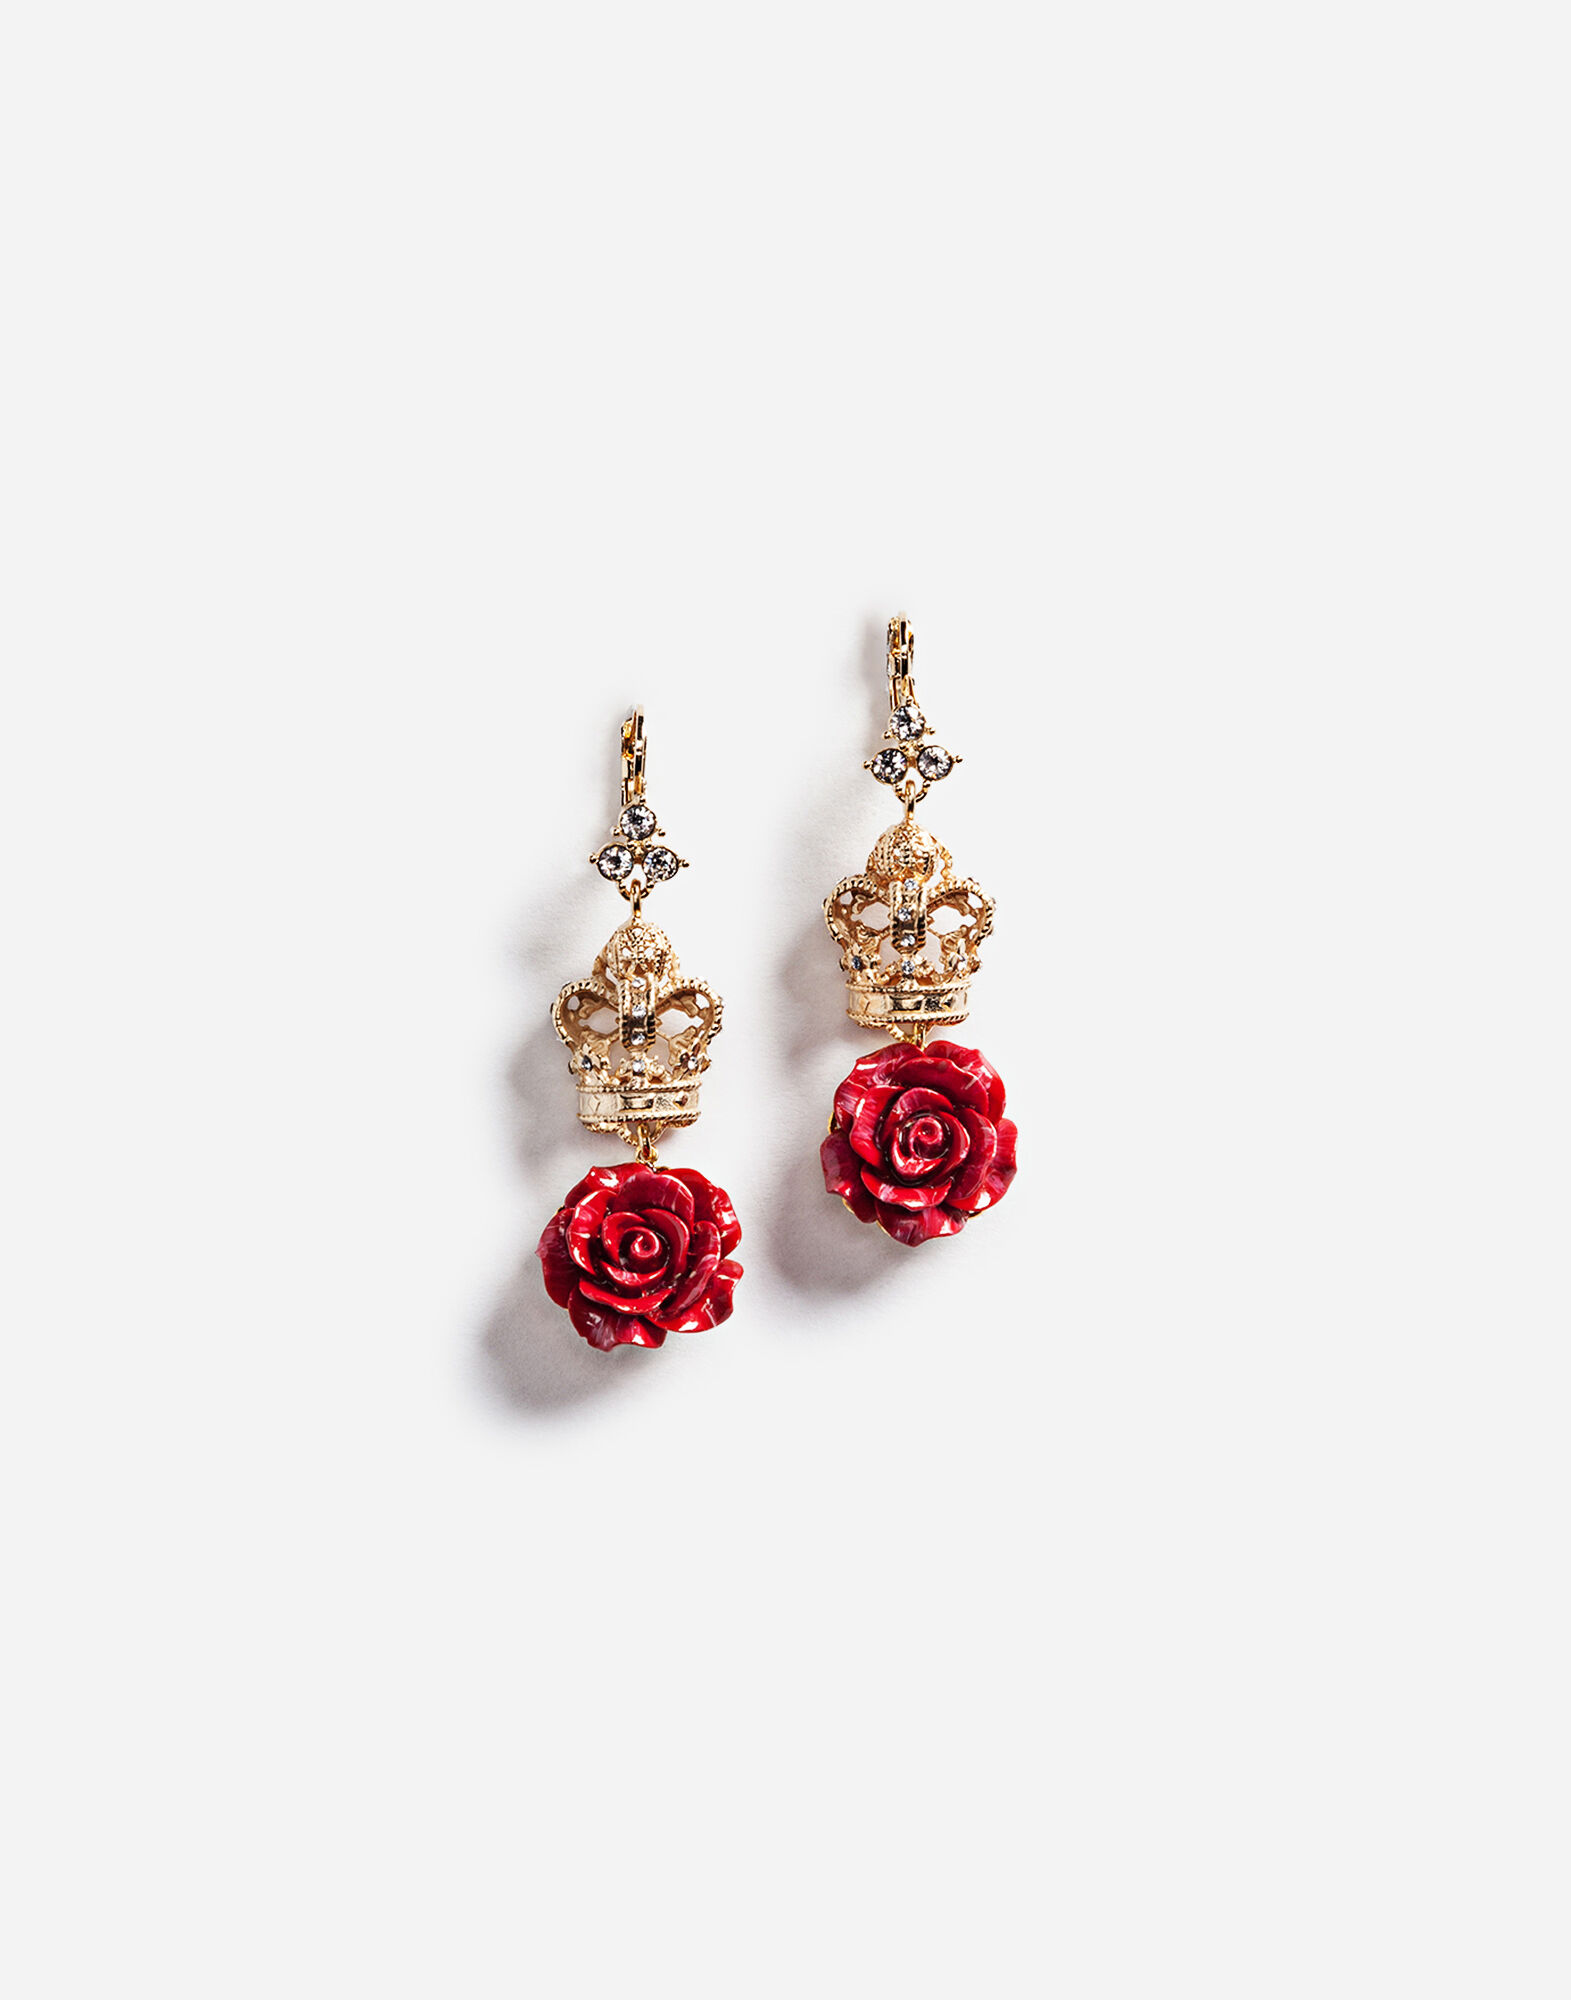 EARRINGS WITH DECORATIVE DETAILS